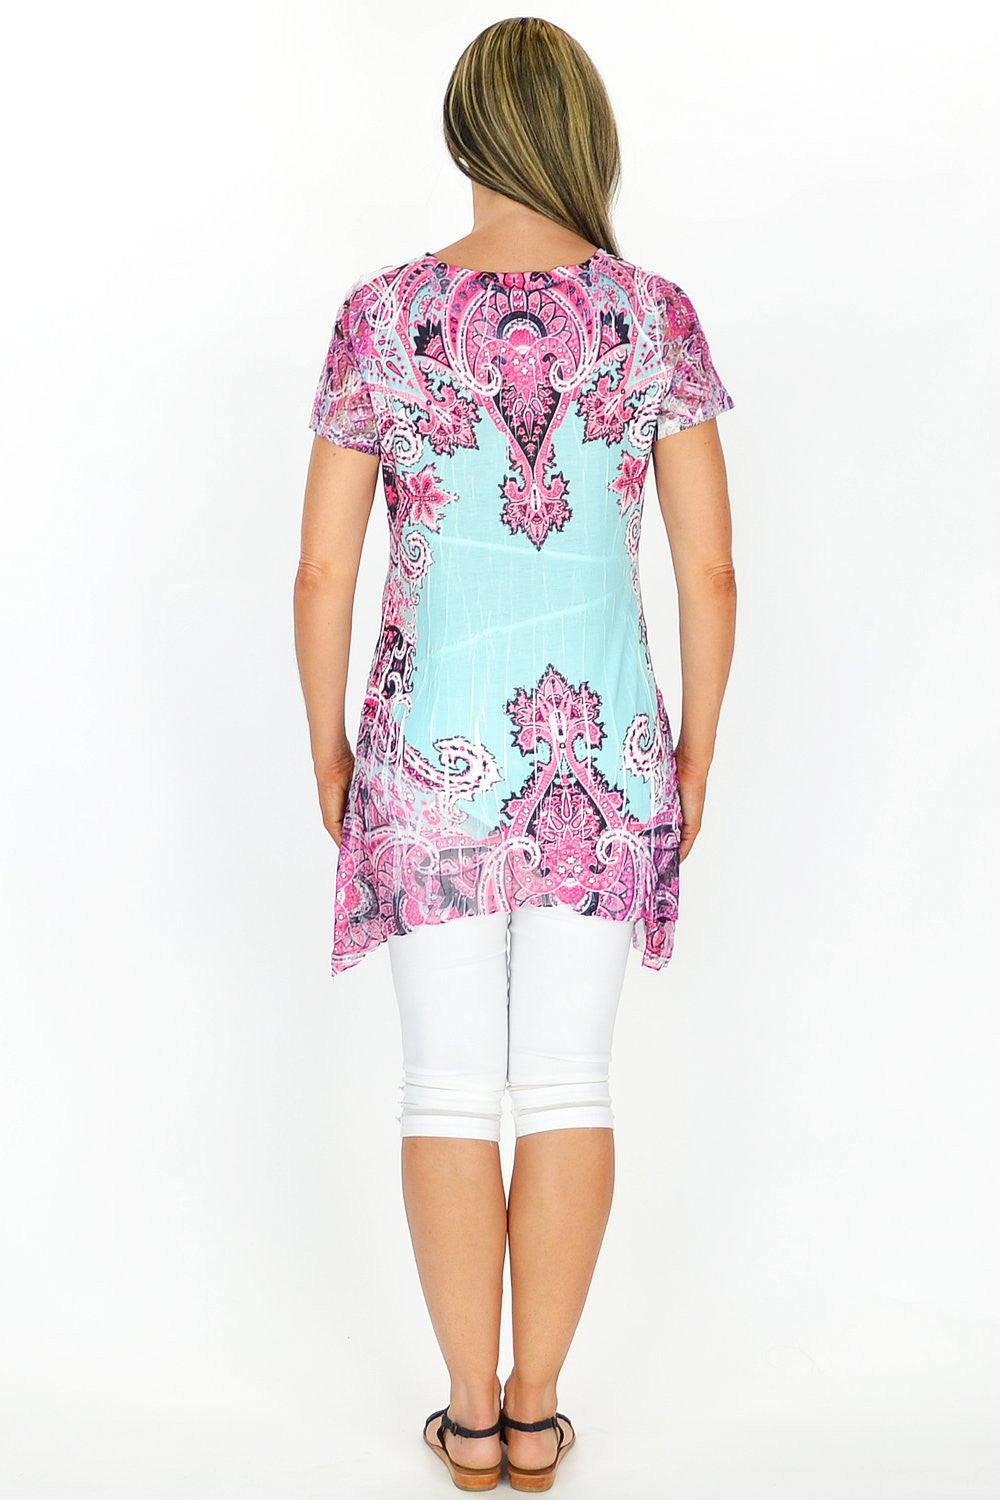 Zaras Paisley Tunic - at I Love Tunics @ www.ilovetunics.com = Number One! Tunics Destination